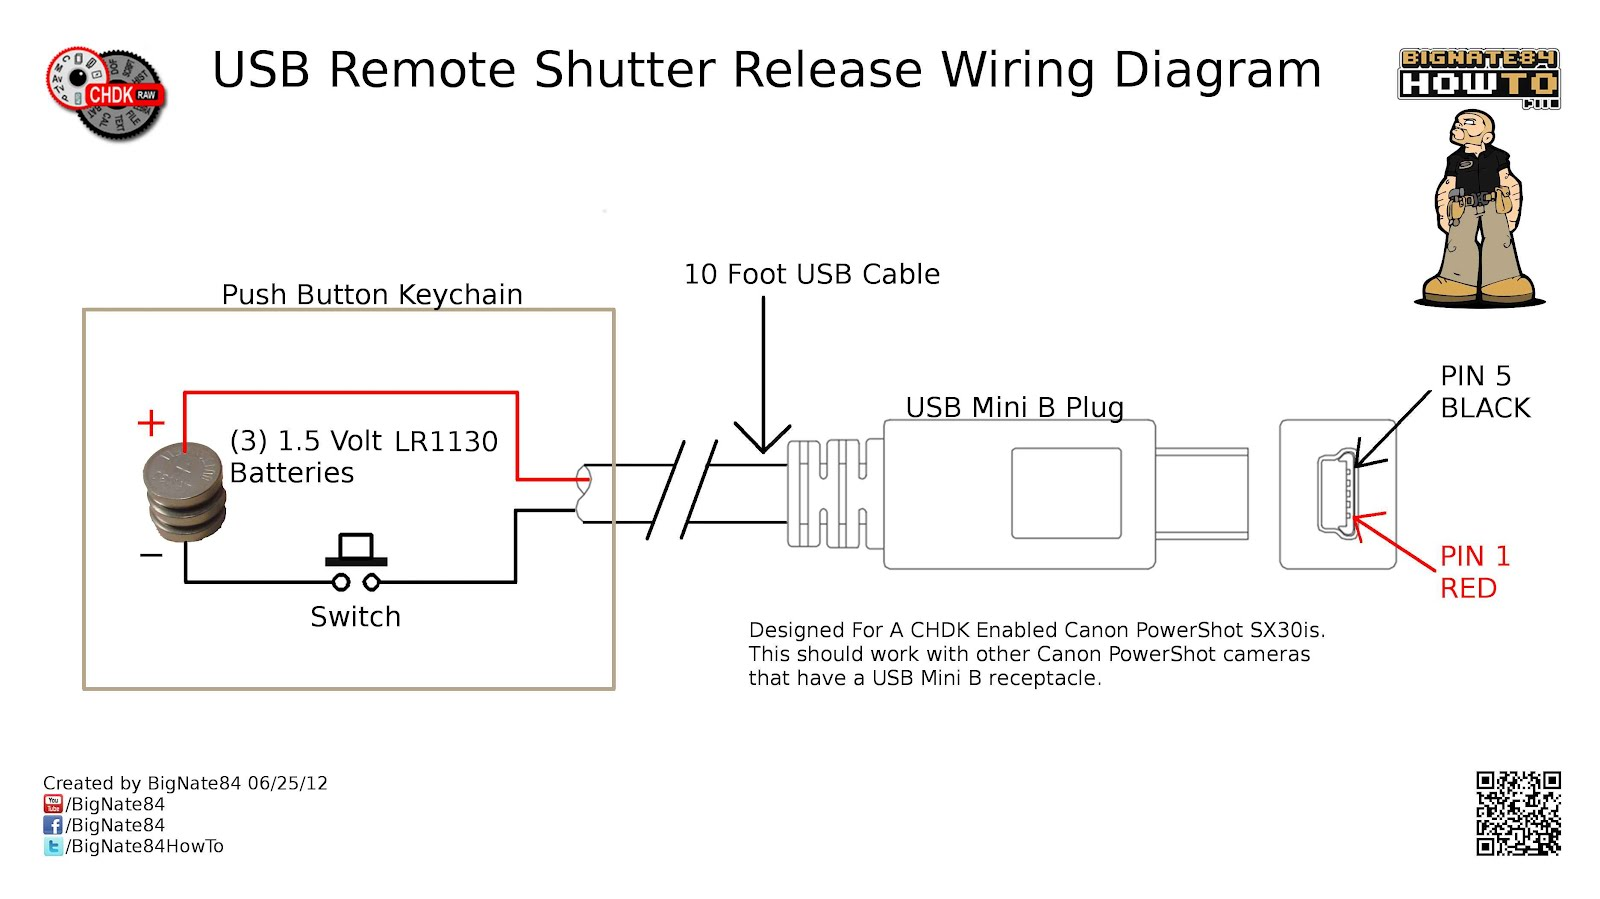 latest?cb=20120809225626 image 0001 usb remote shutter wiring diagram 1 jpeg chdk wiki micro usb wiring diagram at reclaimingppi.co